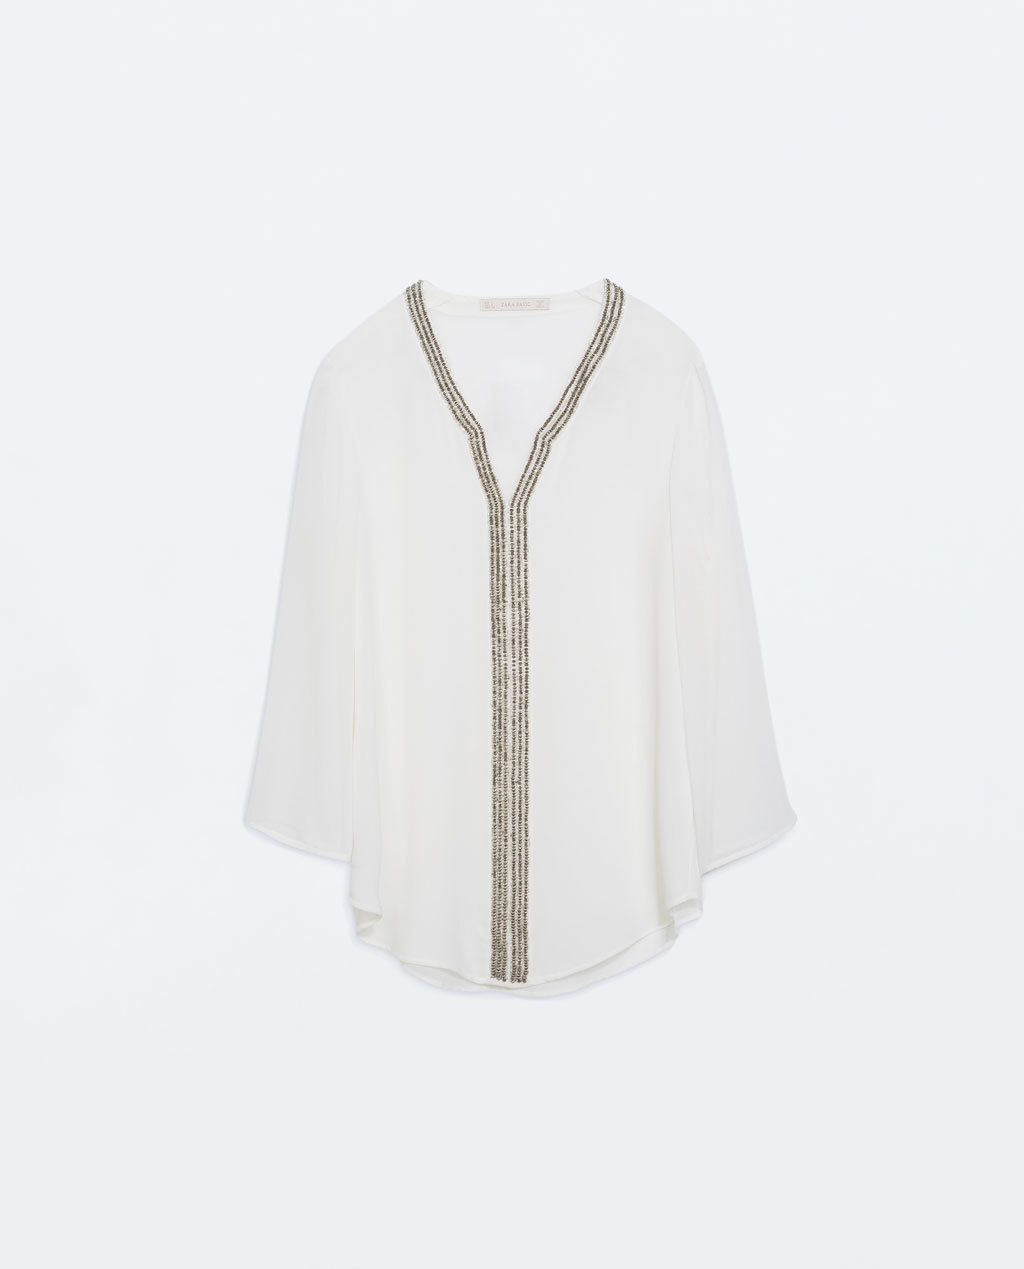 Blouse With AppliquÉ On Collar And Neckline - neckline: v-neck; pattern: plain; length: below the bottom; style: blouse; predominant colour: ivory/cream; secondary colour: silver; occasions: evening, creative work; fibres: polyester/polyamide - 100%; fit: straight cut; sleeve length: 3/4 length; sleeve style: standard; texture group: sheer fabrics/chiffon/organza etc.; pattern type: fabric; embellishment: beading; season: a/w 2014; embellishment location: bust